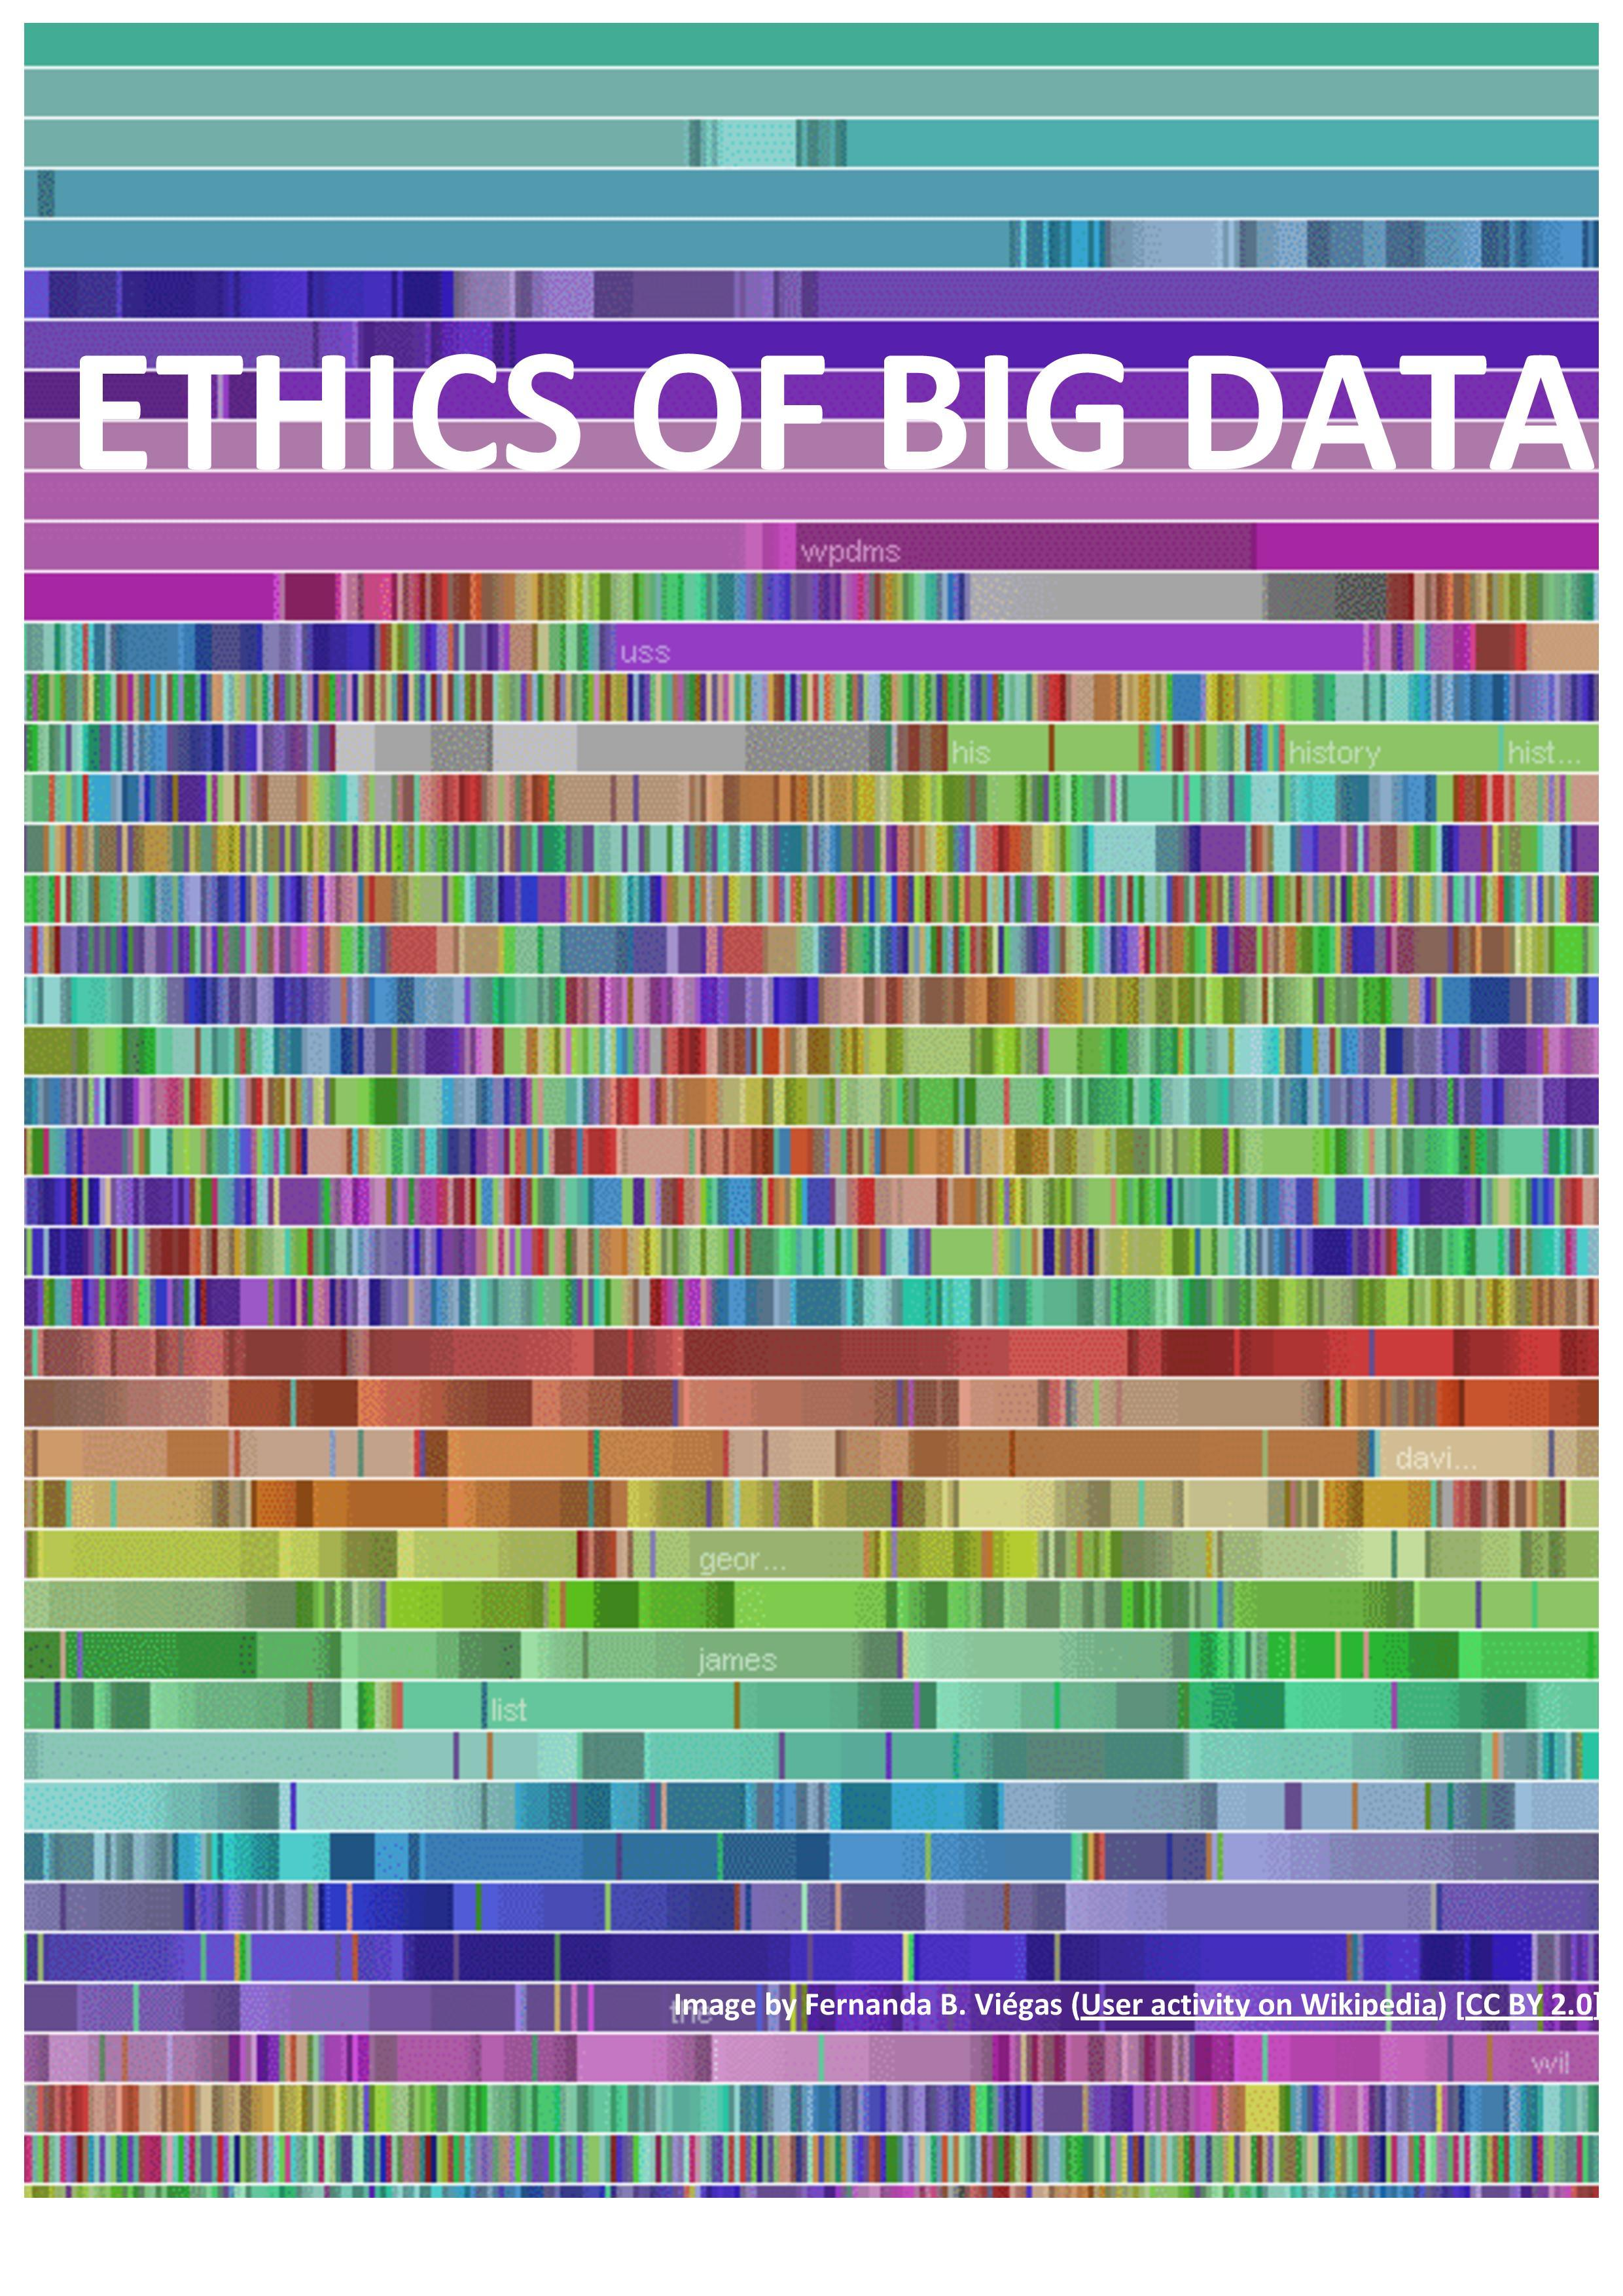 Grant awarded to Ethics of Big Data to explore 'Ethics and Governance of Autonomous Systems and Machine Learning in the Digital Society'